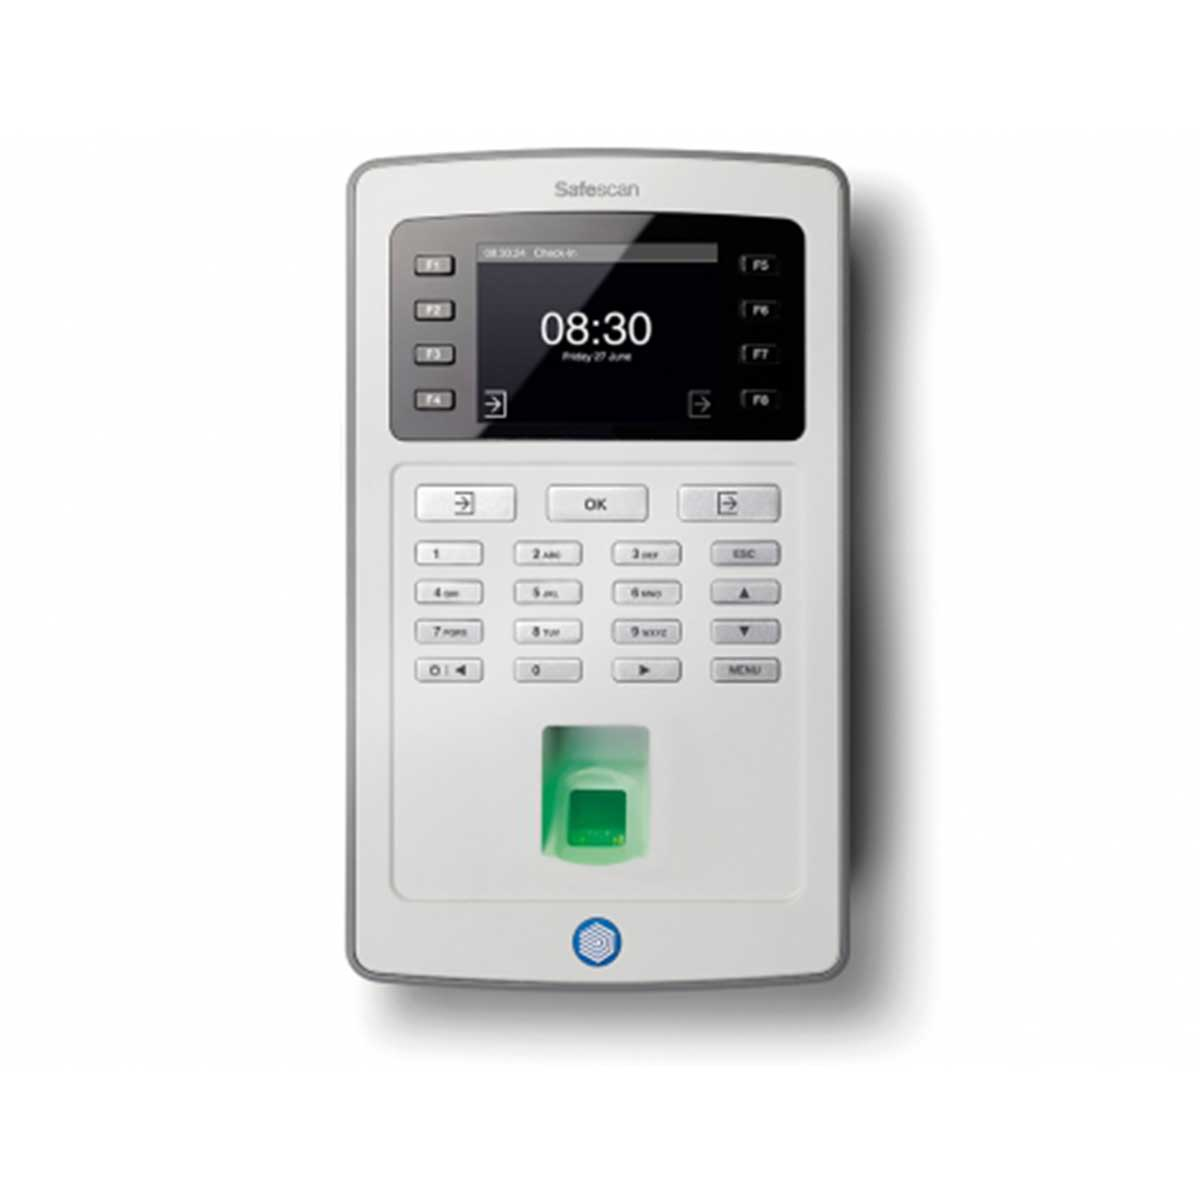 Safescan TA-8035 Time Attendance System with RFID and Fingerprint Reader and Wi-Fi - Grey